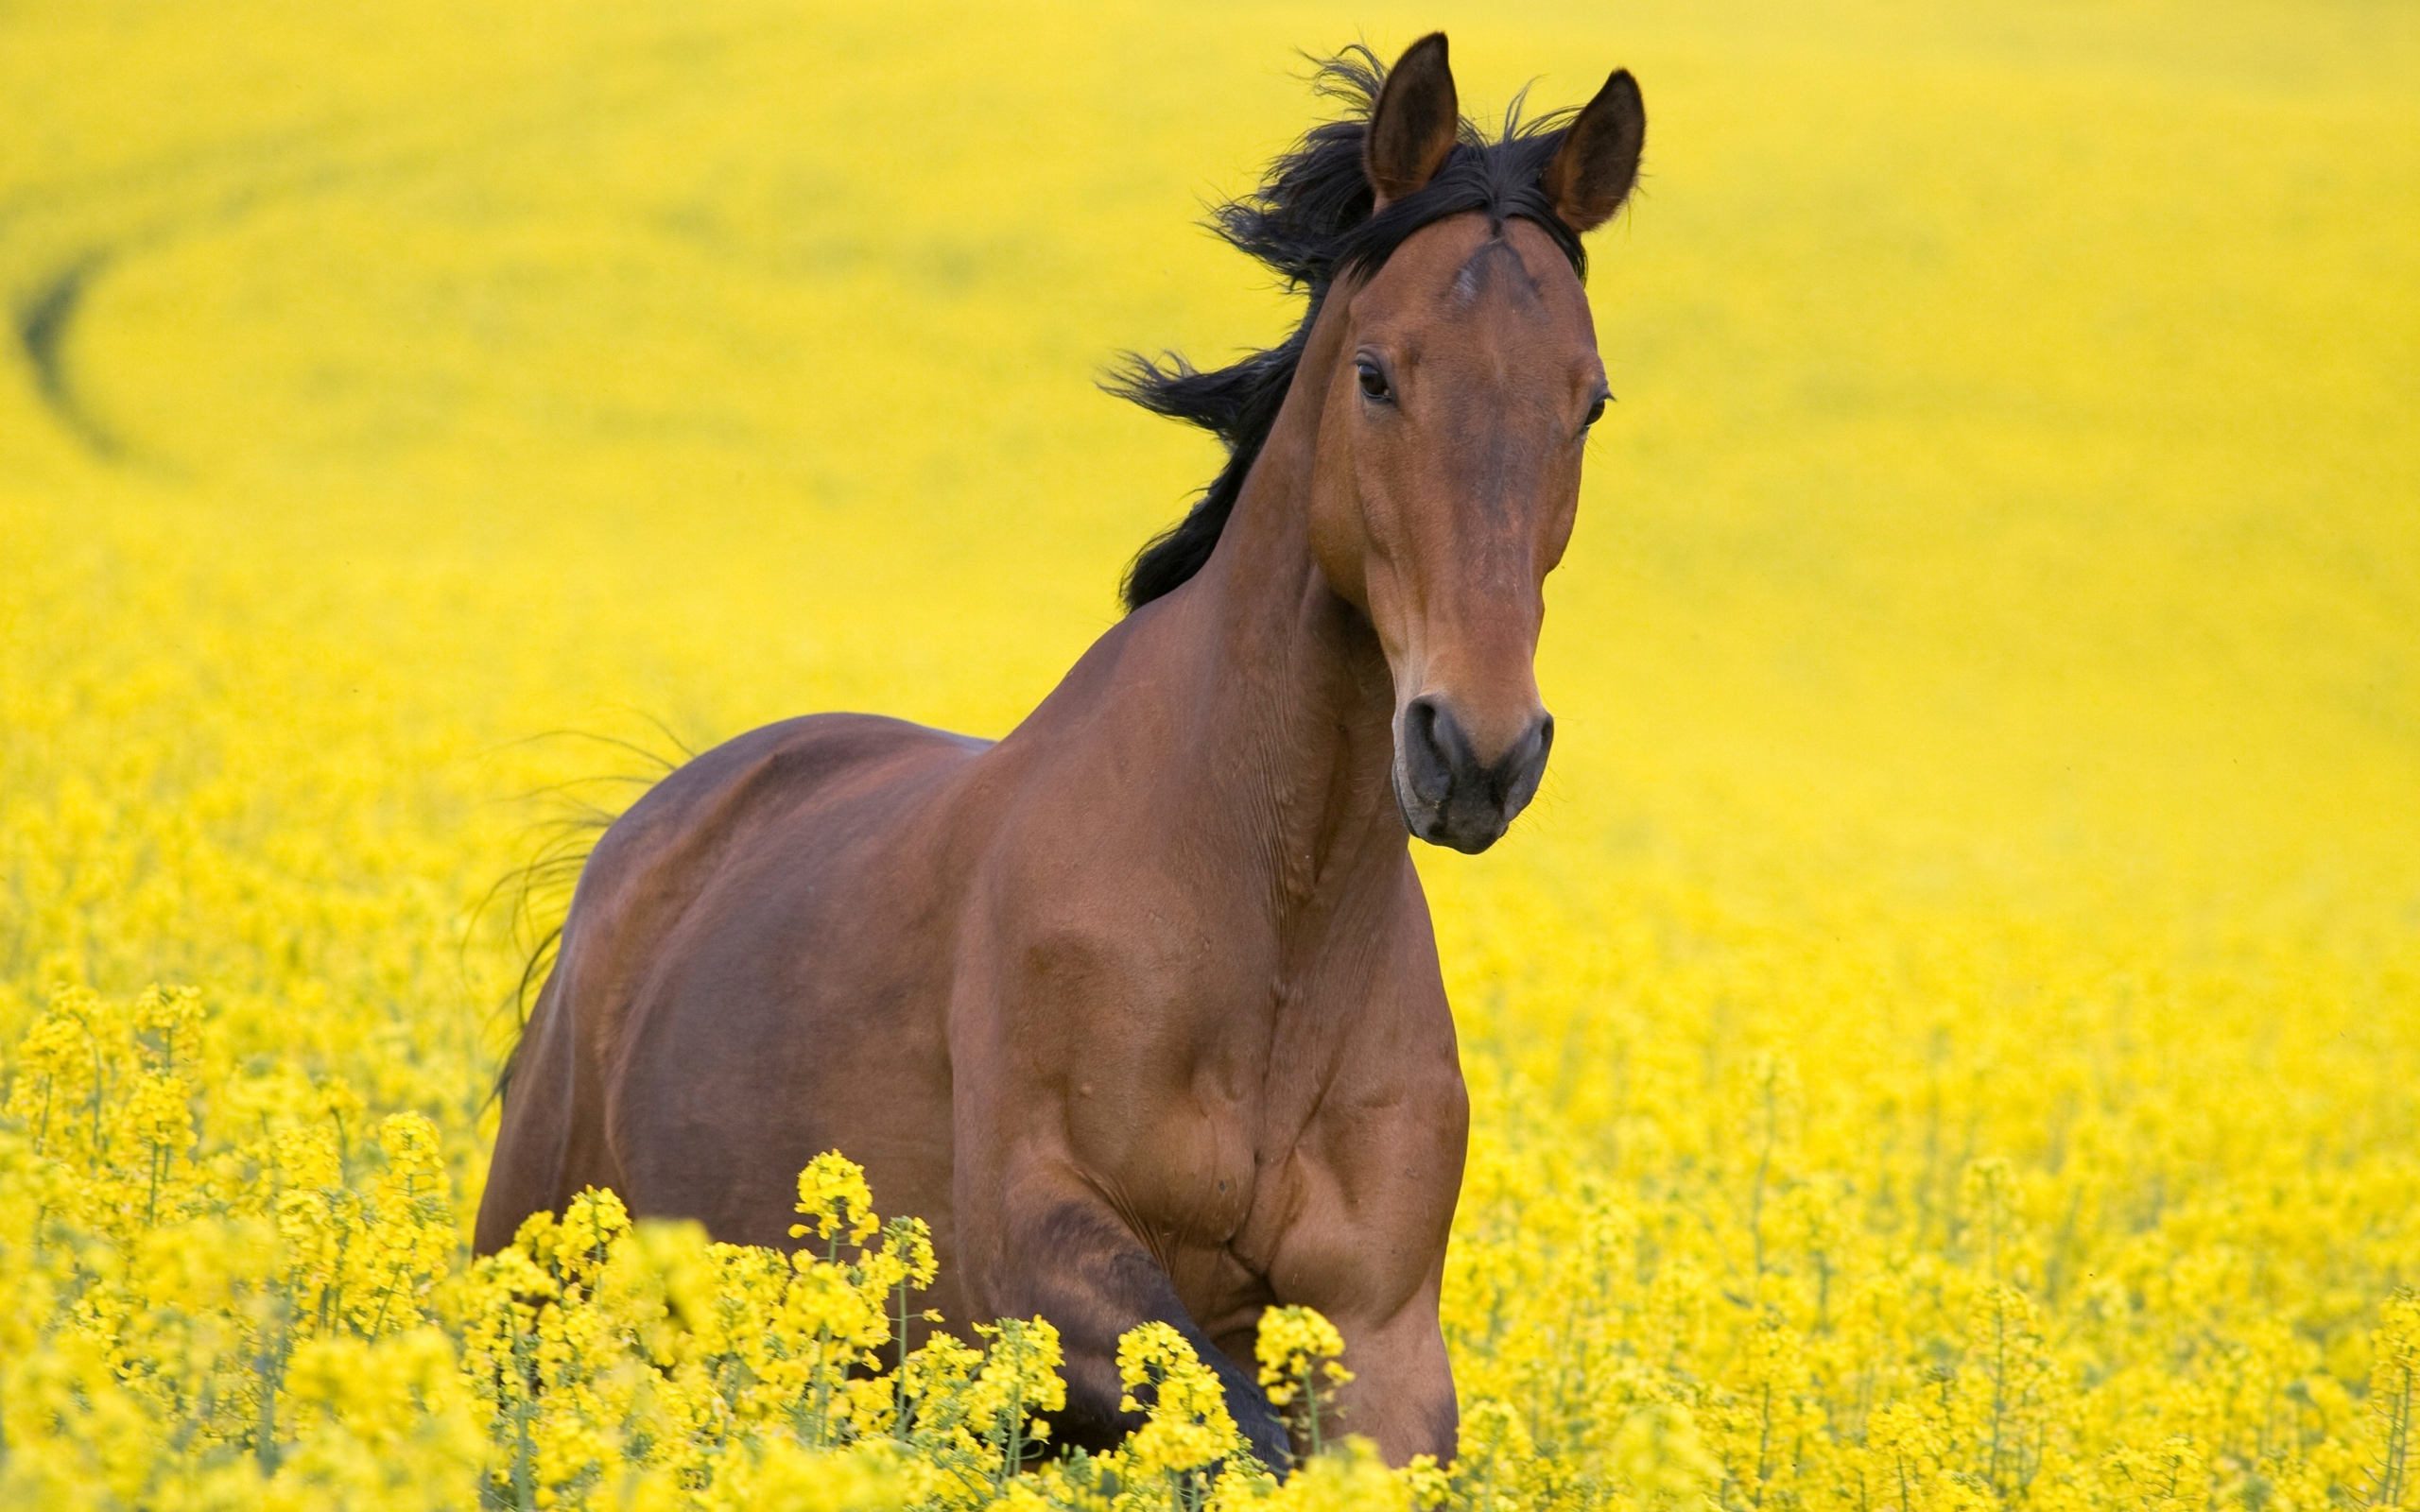 horses and flowers wallpaper - photo #16